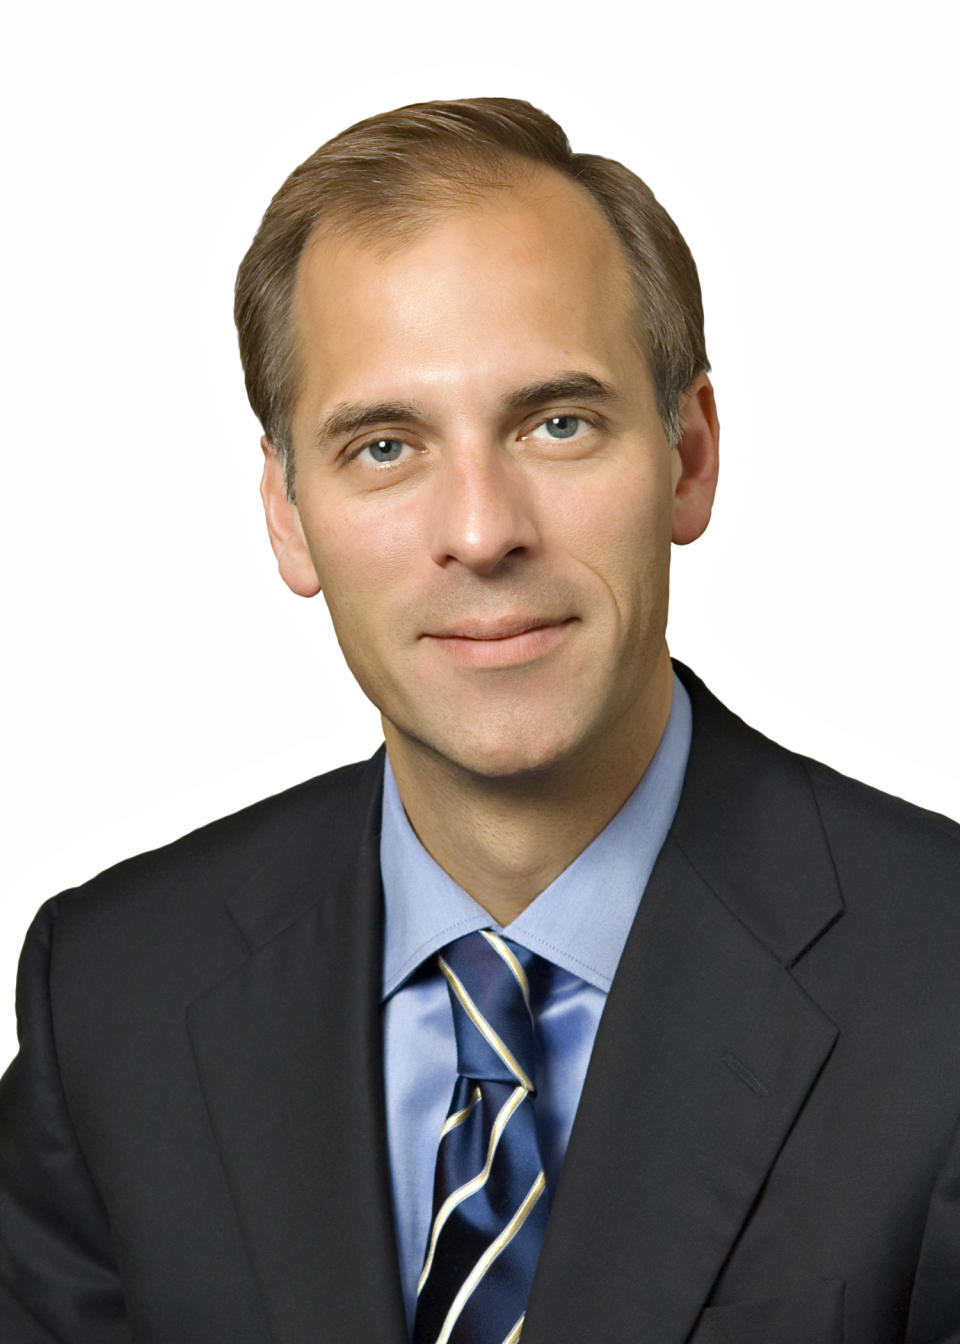 In this undated photo provided by Moody's Economy.com, Mark Zandi, chief economist and chief investment strategist, is shown. Zandi says that if the economy looked like it was going to slip into another recession, Congress should exempt employers from the payroll tax for three months, among other steps. (AP Photo/Moody's Economy.com) NO SALES